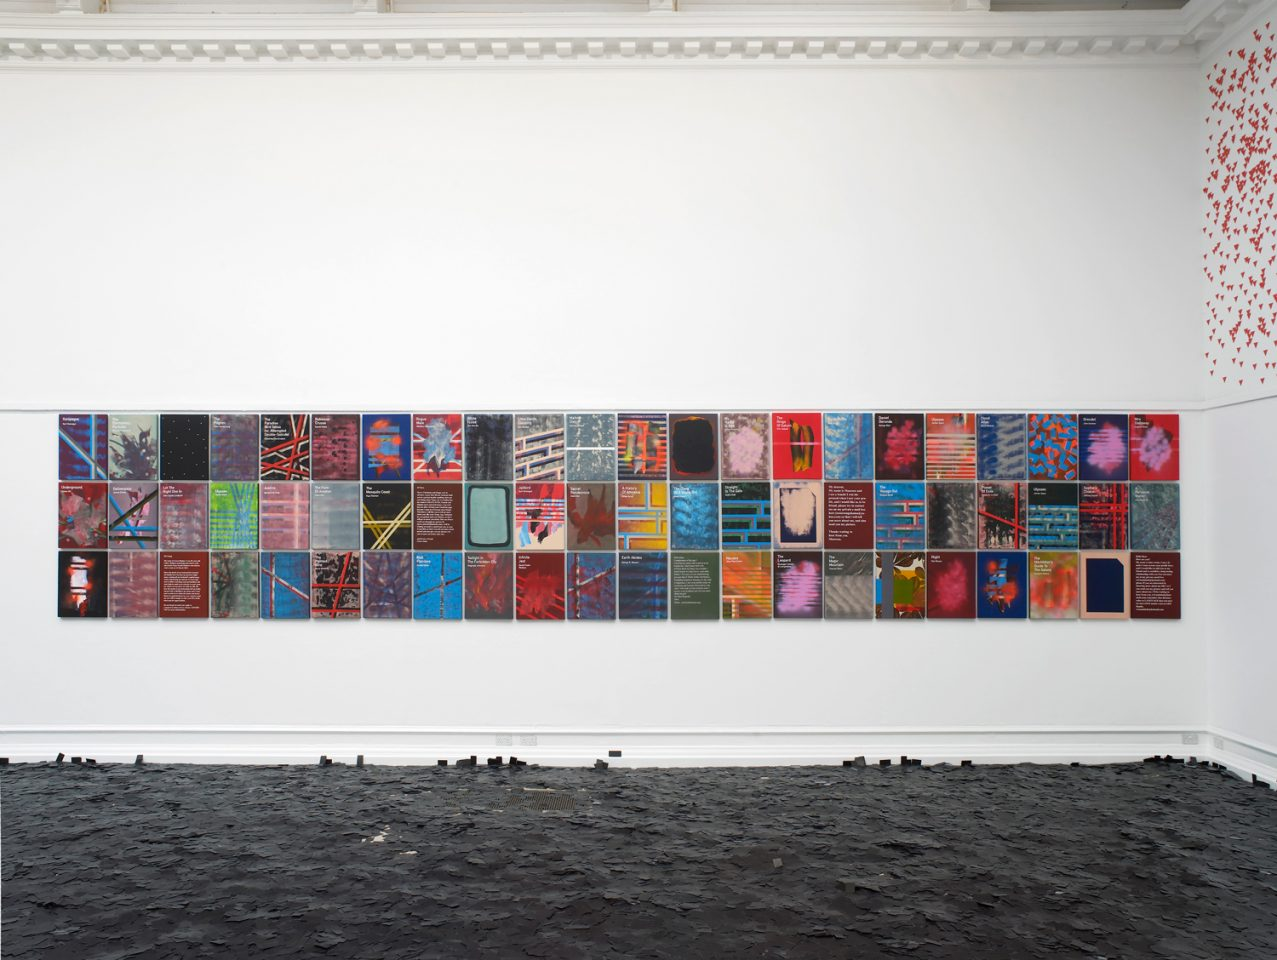 Installation view of Heman Chong's, An Arm, A Leg and Other Stories, 2015 in the Main Galleries. Courtesy the artist and Wilkinson Gallery. Photo: Andy Keate